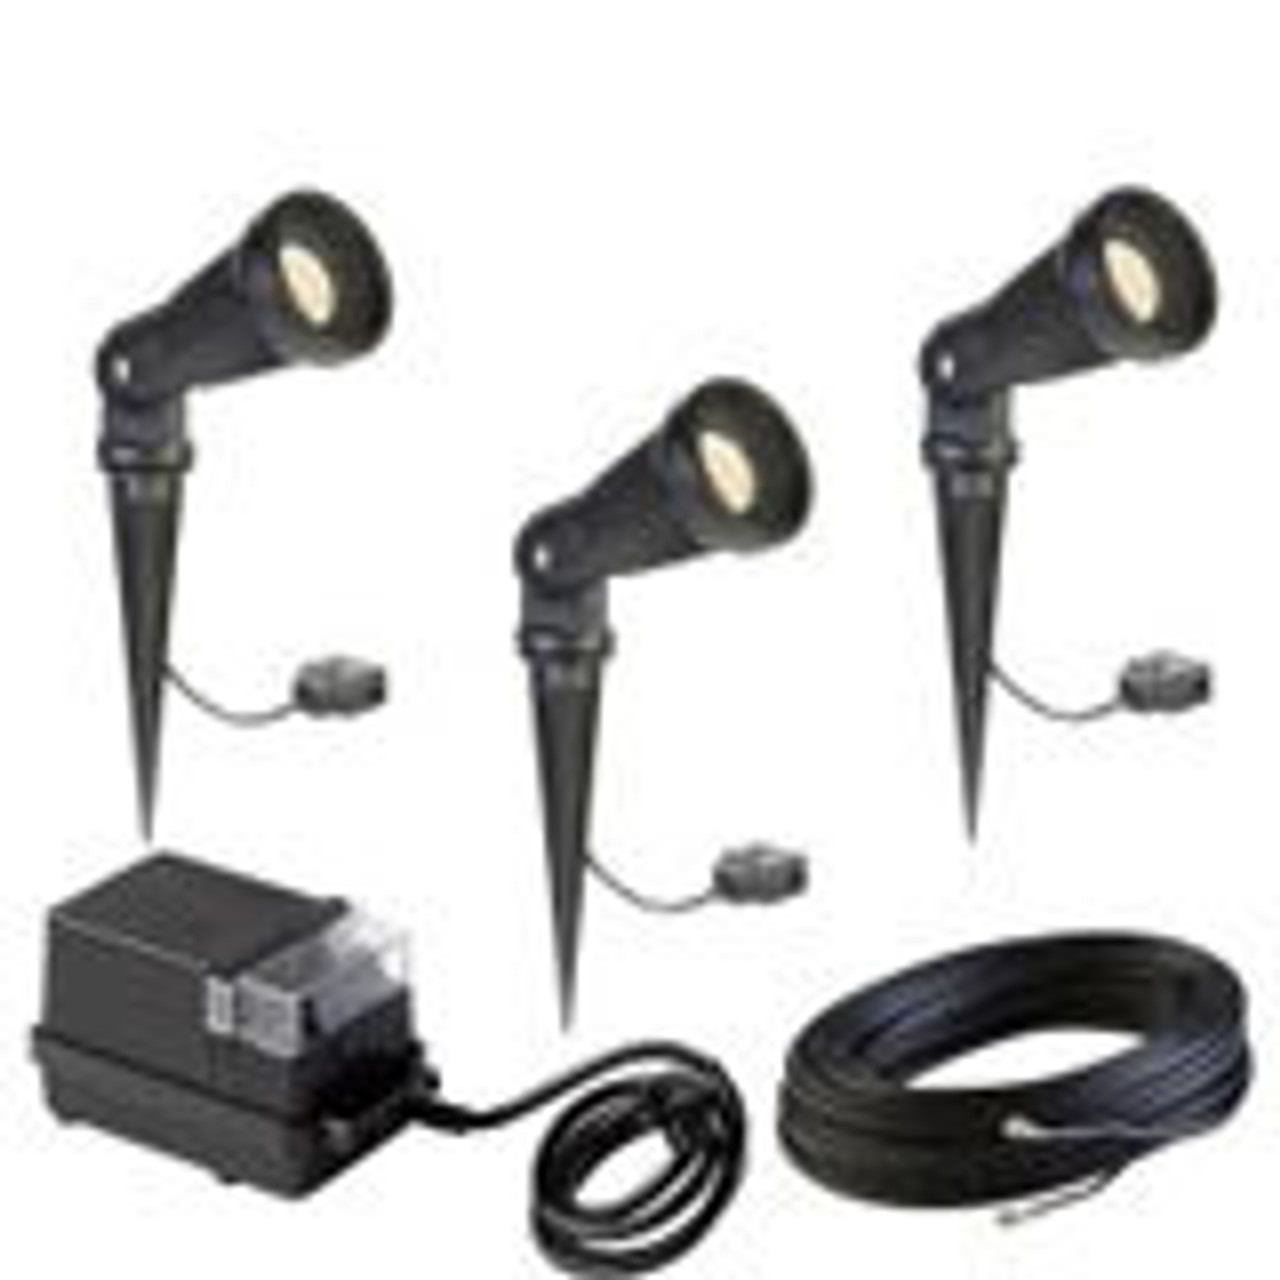 LED DIY Spot Light Kits